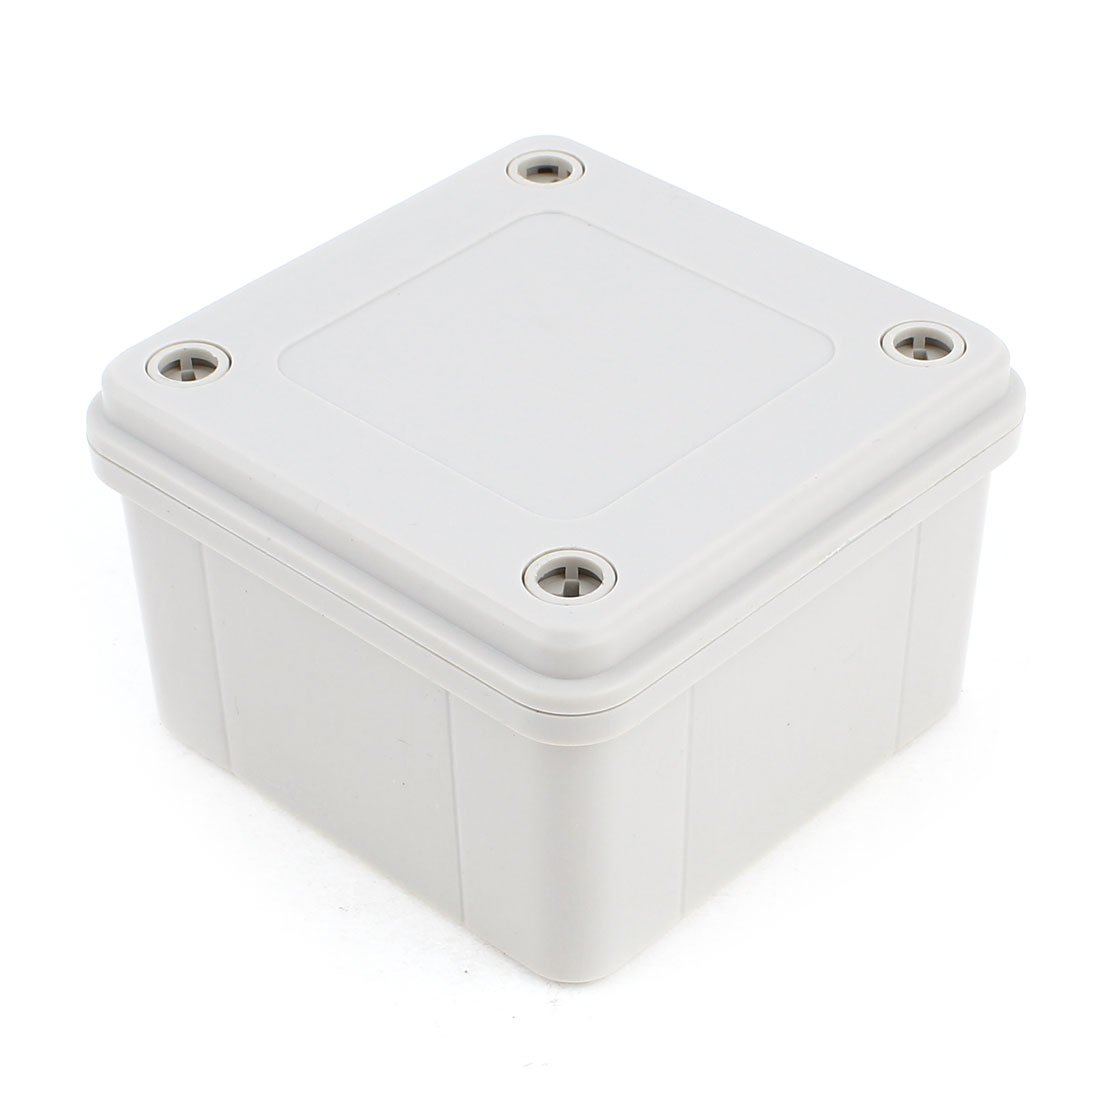 96mm x 96mm x 60mm Waterproof Plastic DIY Junction Box Power Protection Case